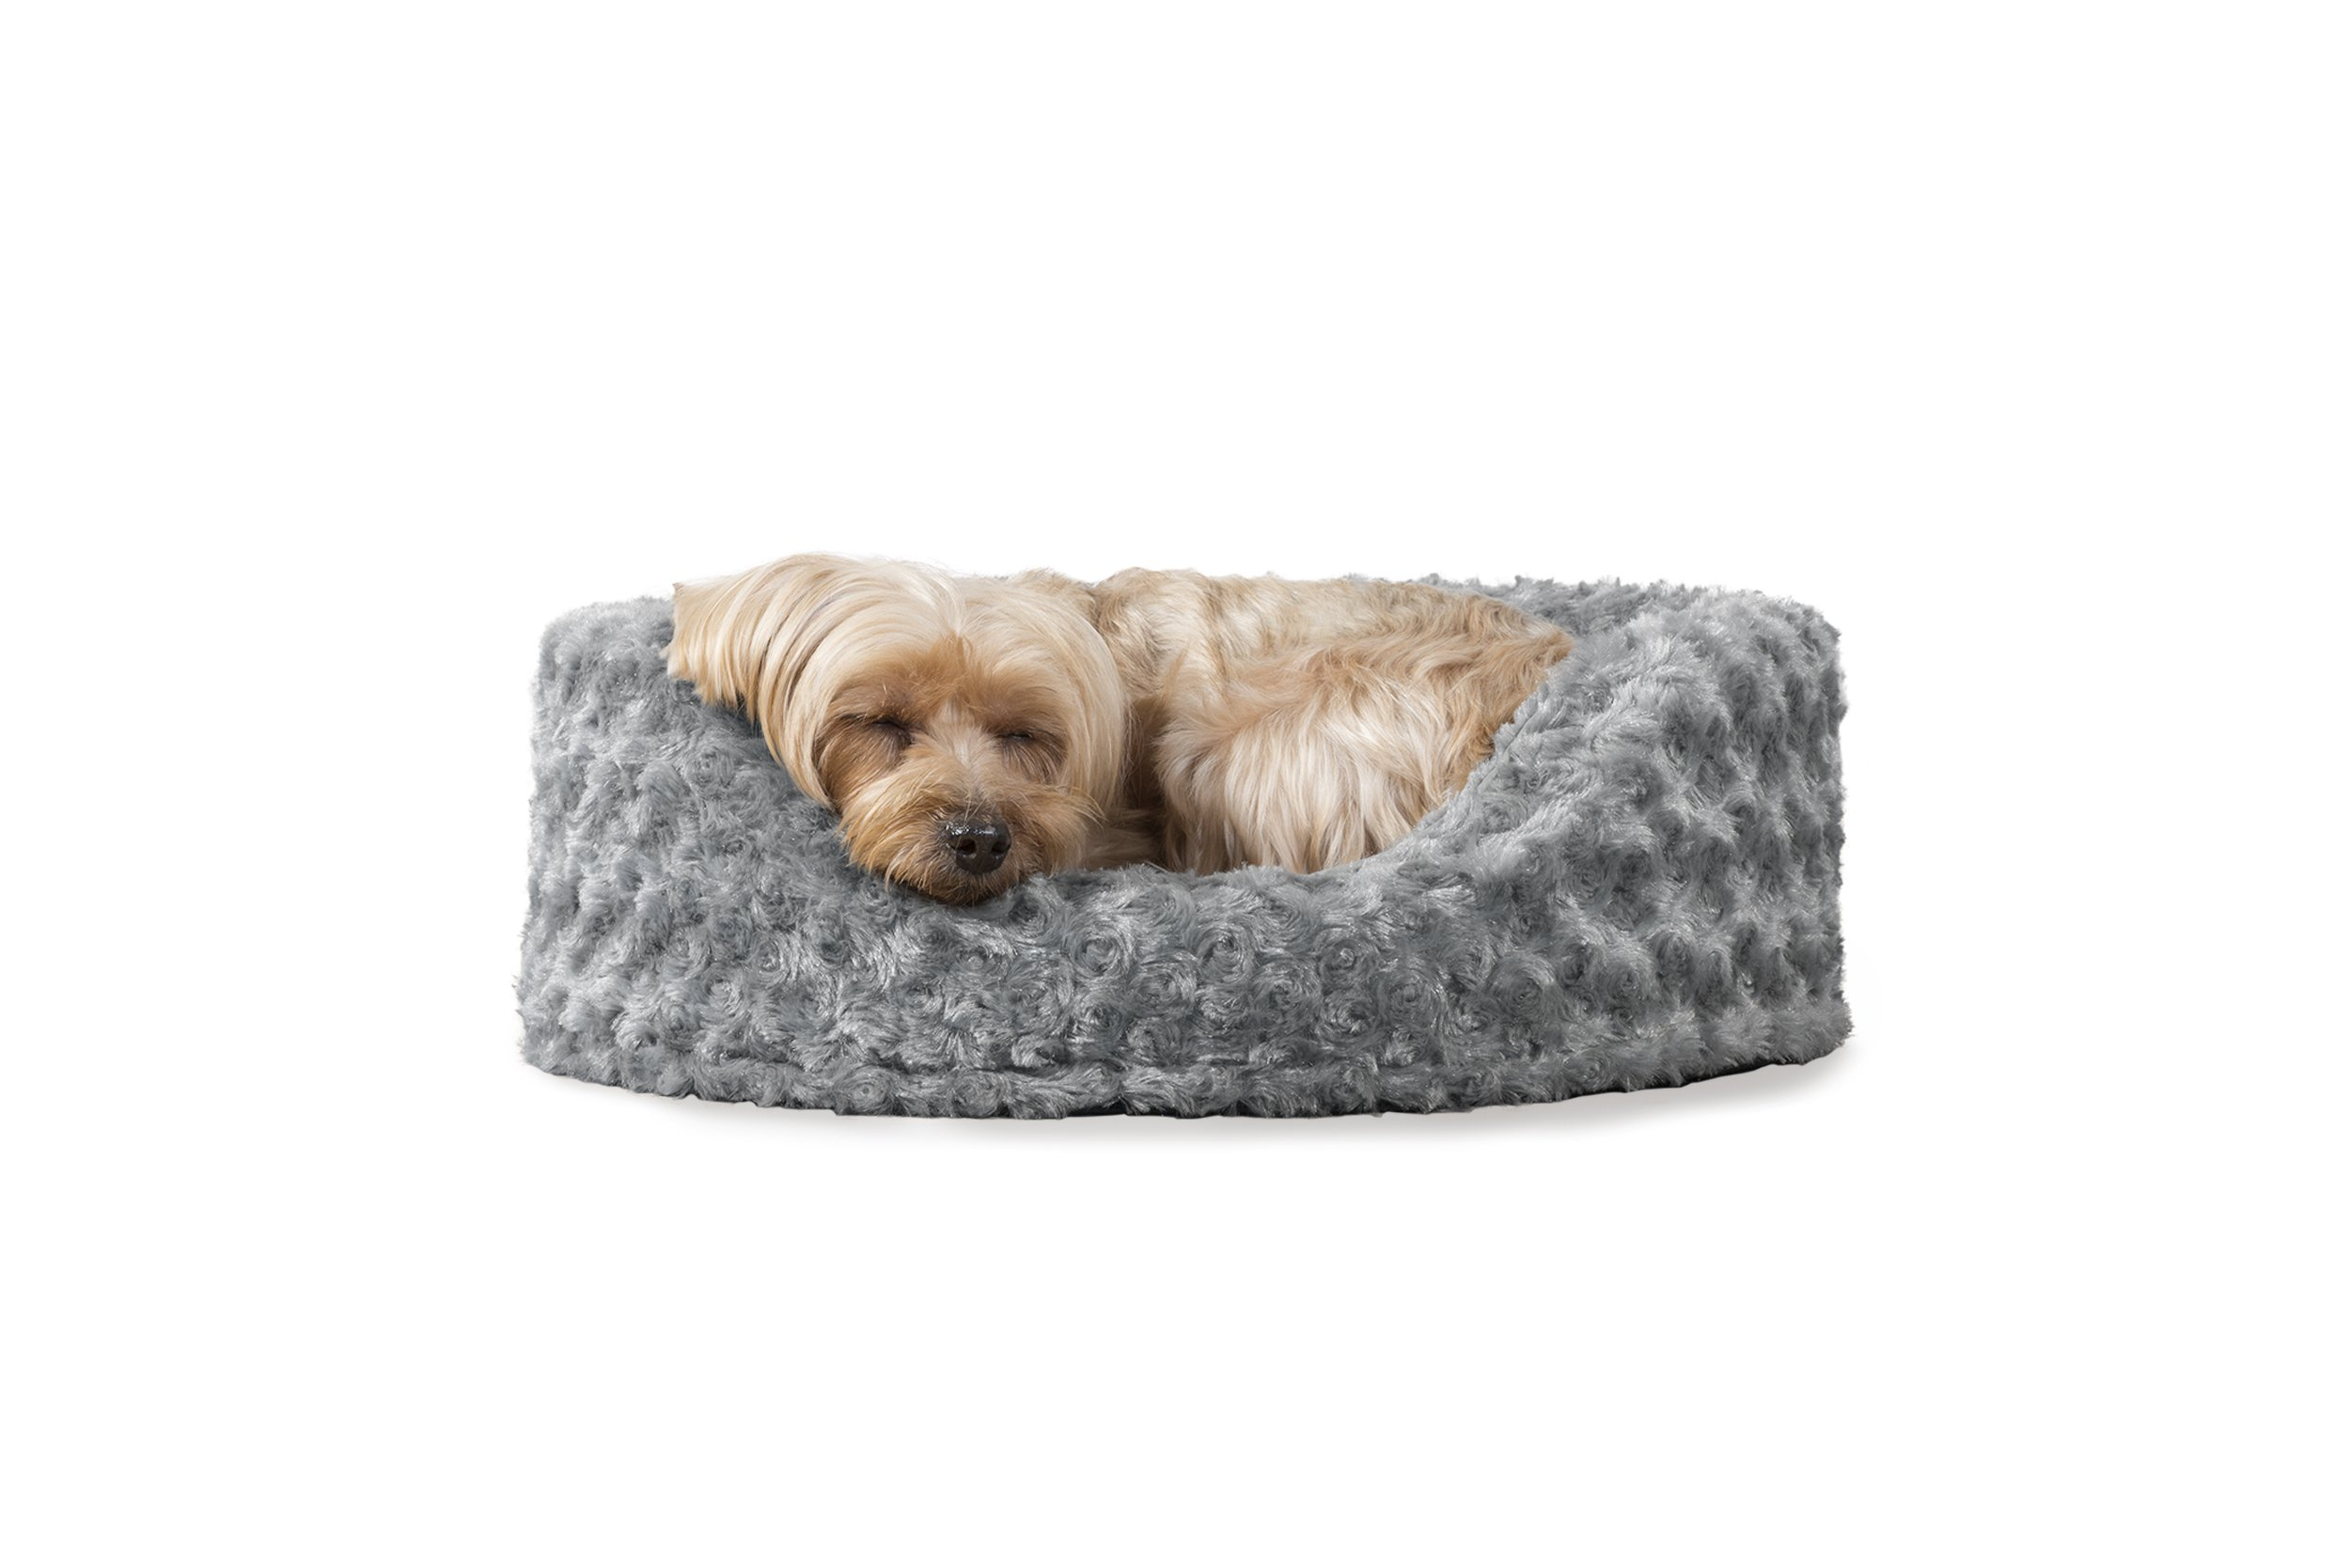 Furhaven Pet Dog Bed   Oval Ultra Plush Pet Bed for Dogs & Cats, Small, Gray